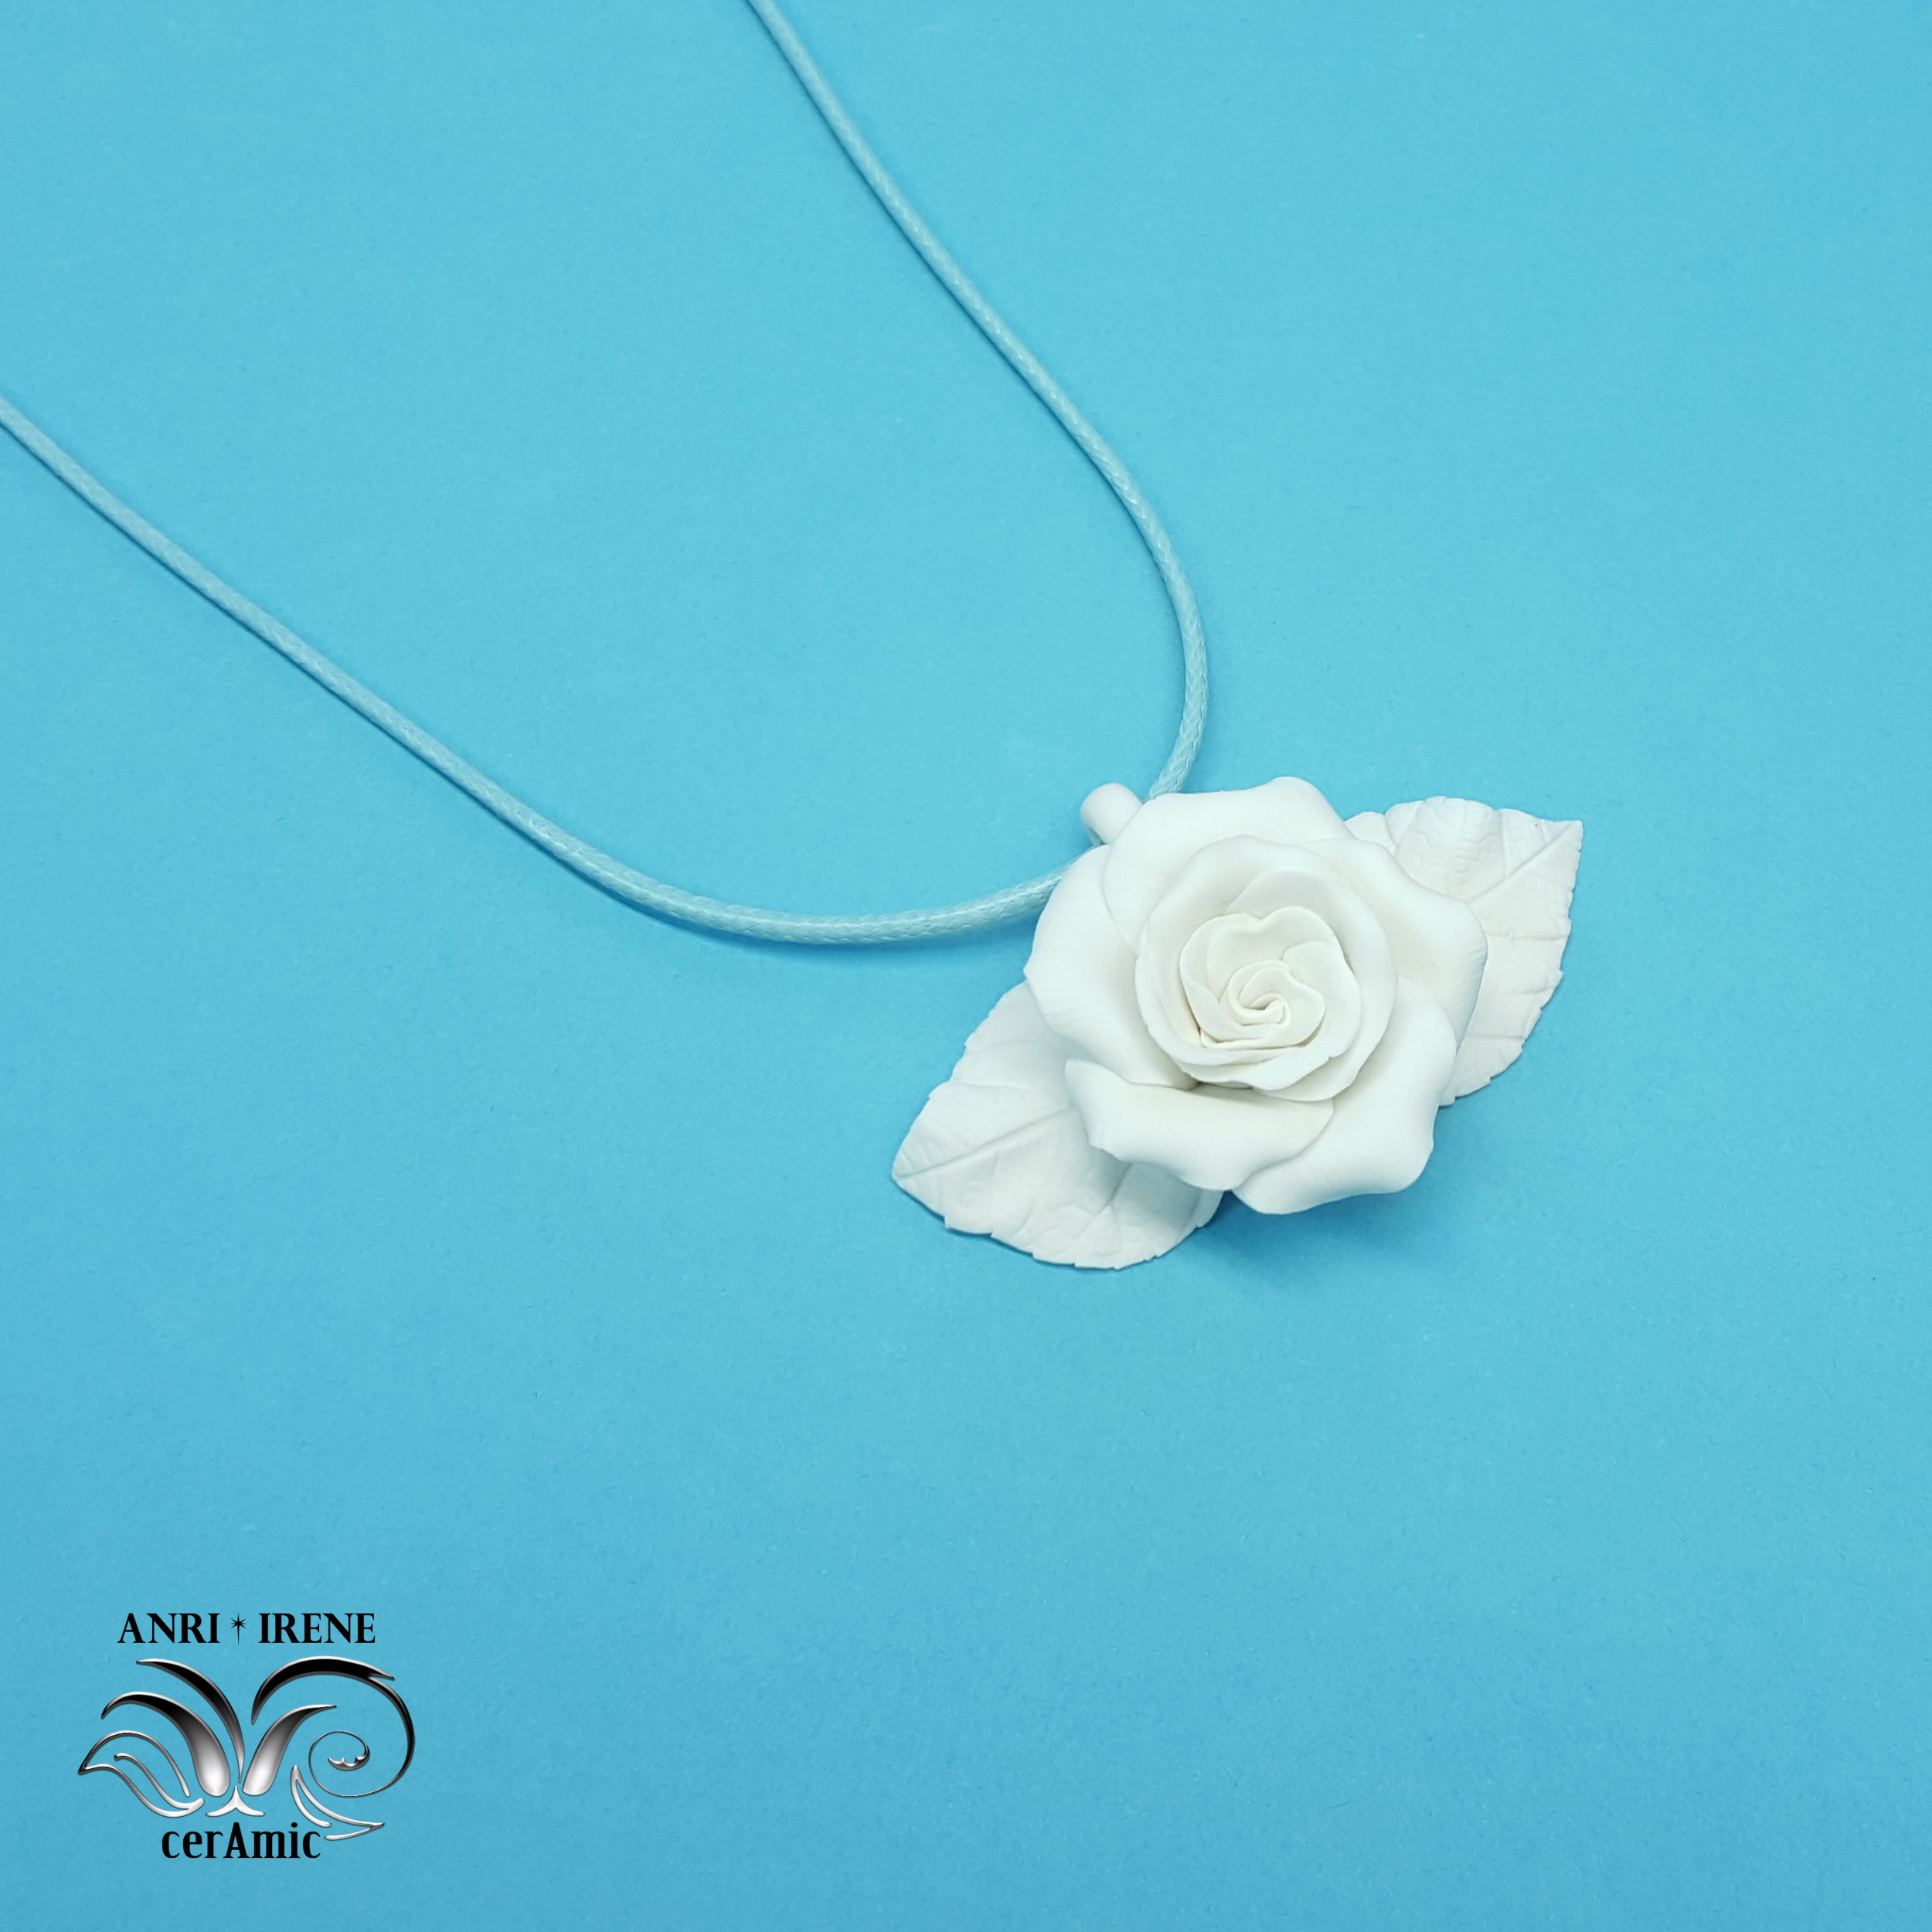 ceramic rose necklace